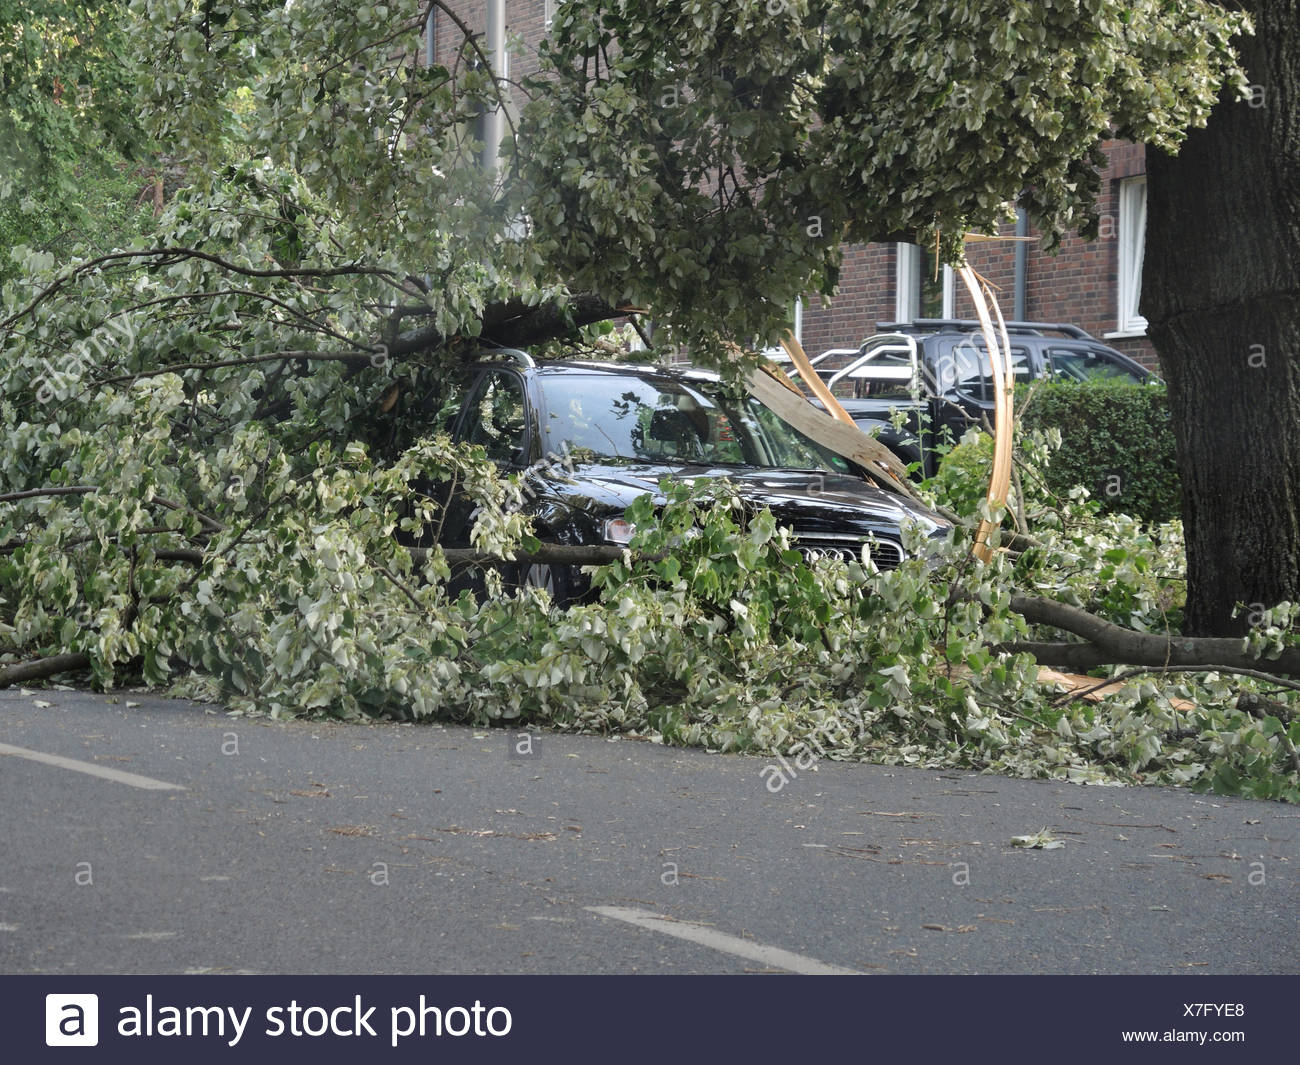 tree fallen on a parked car, damages by storm front Ela at 2014-06-09, Germany, North Rhine-Westphalia, Ruhr Area, Bochum - Stock Image